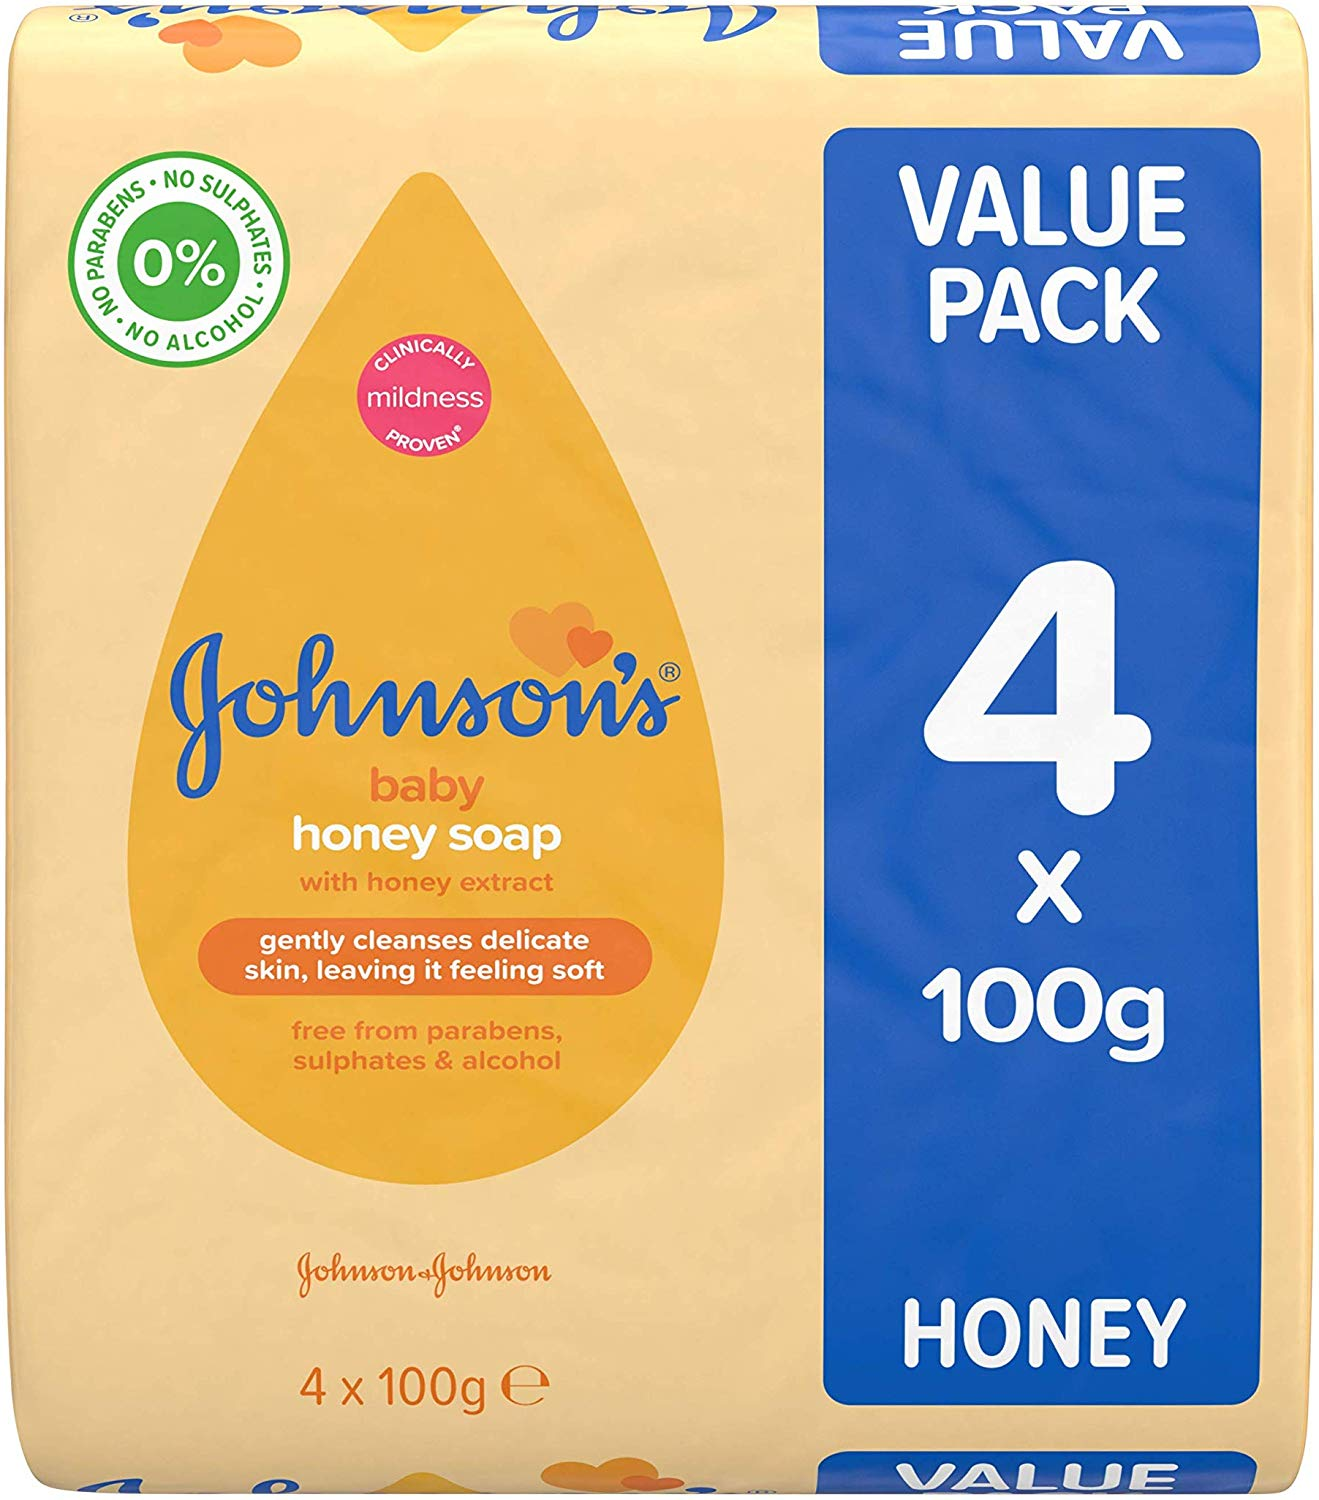 JOHNSON'S Baby Honey Soap 100g 4 pack for £1(add on item)